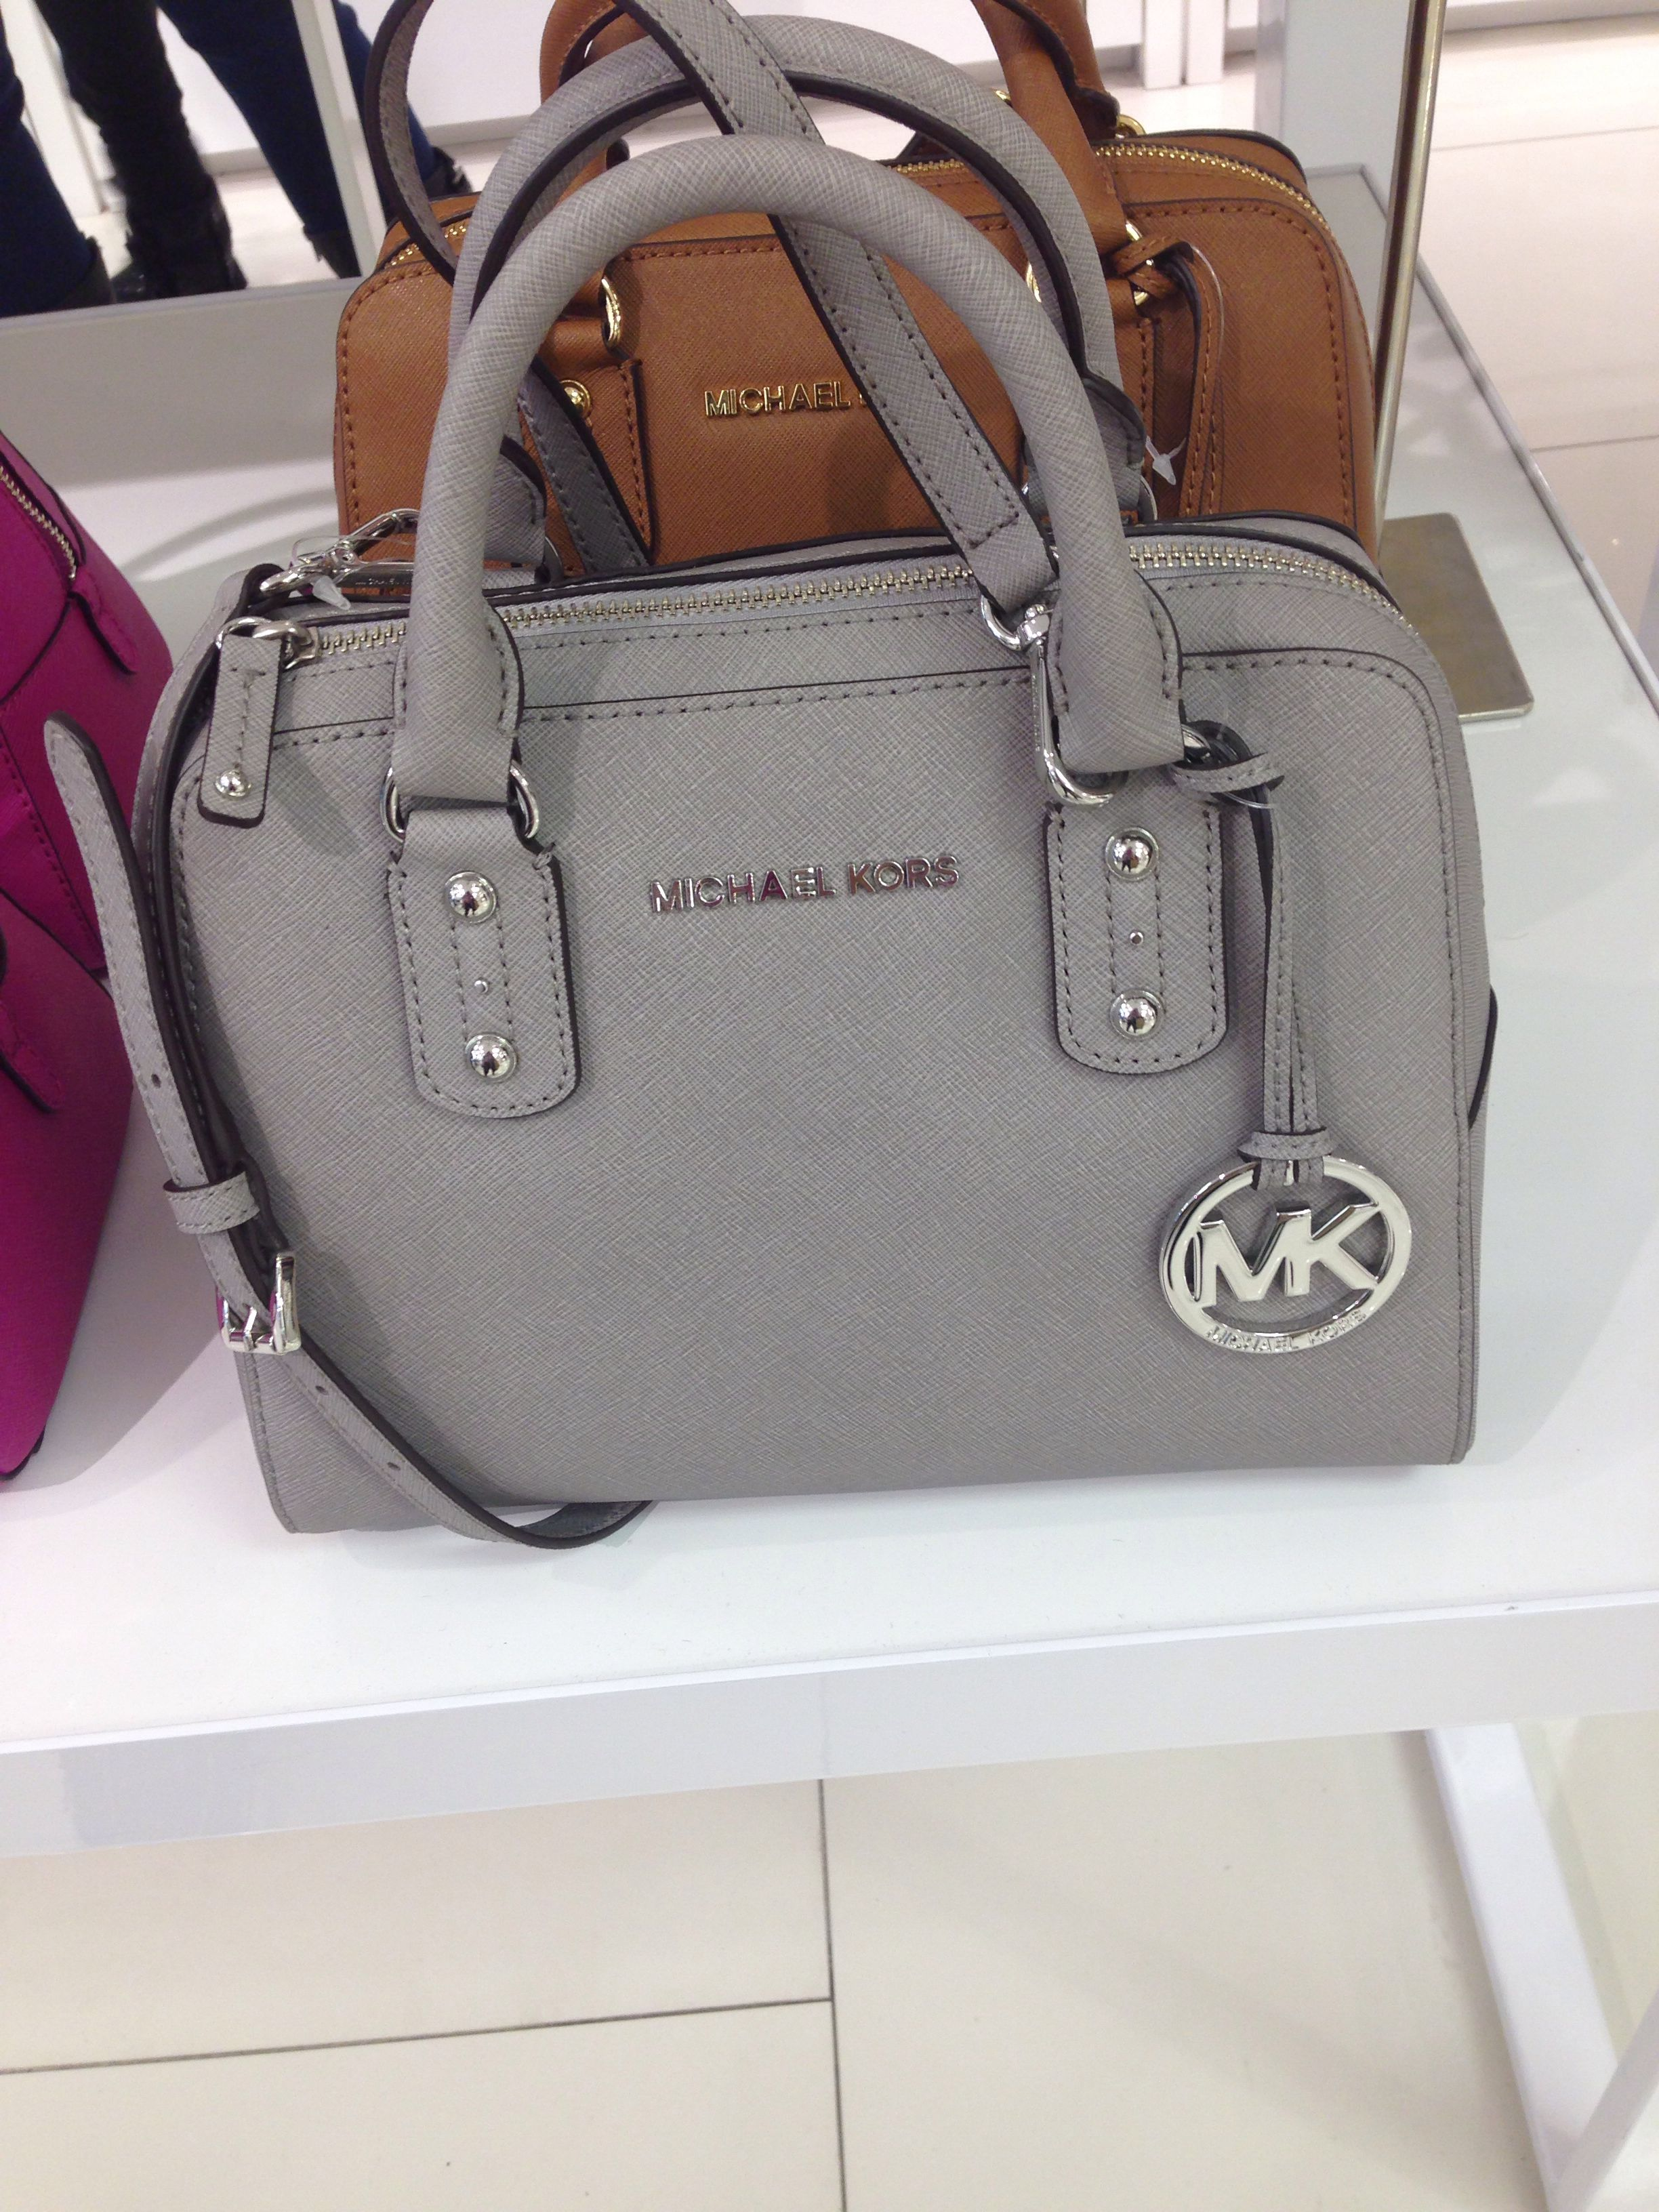 Handbags Wonderful collection of michael kors images